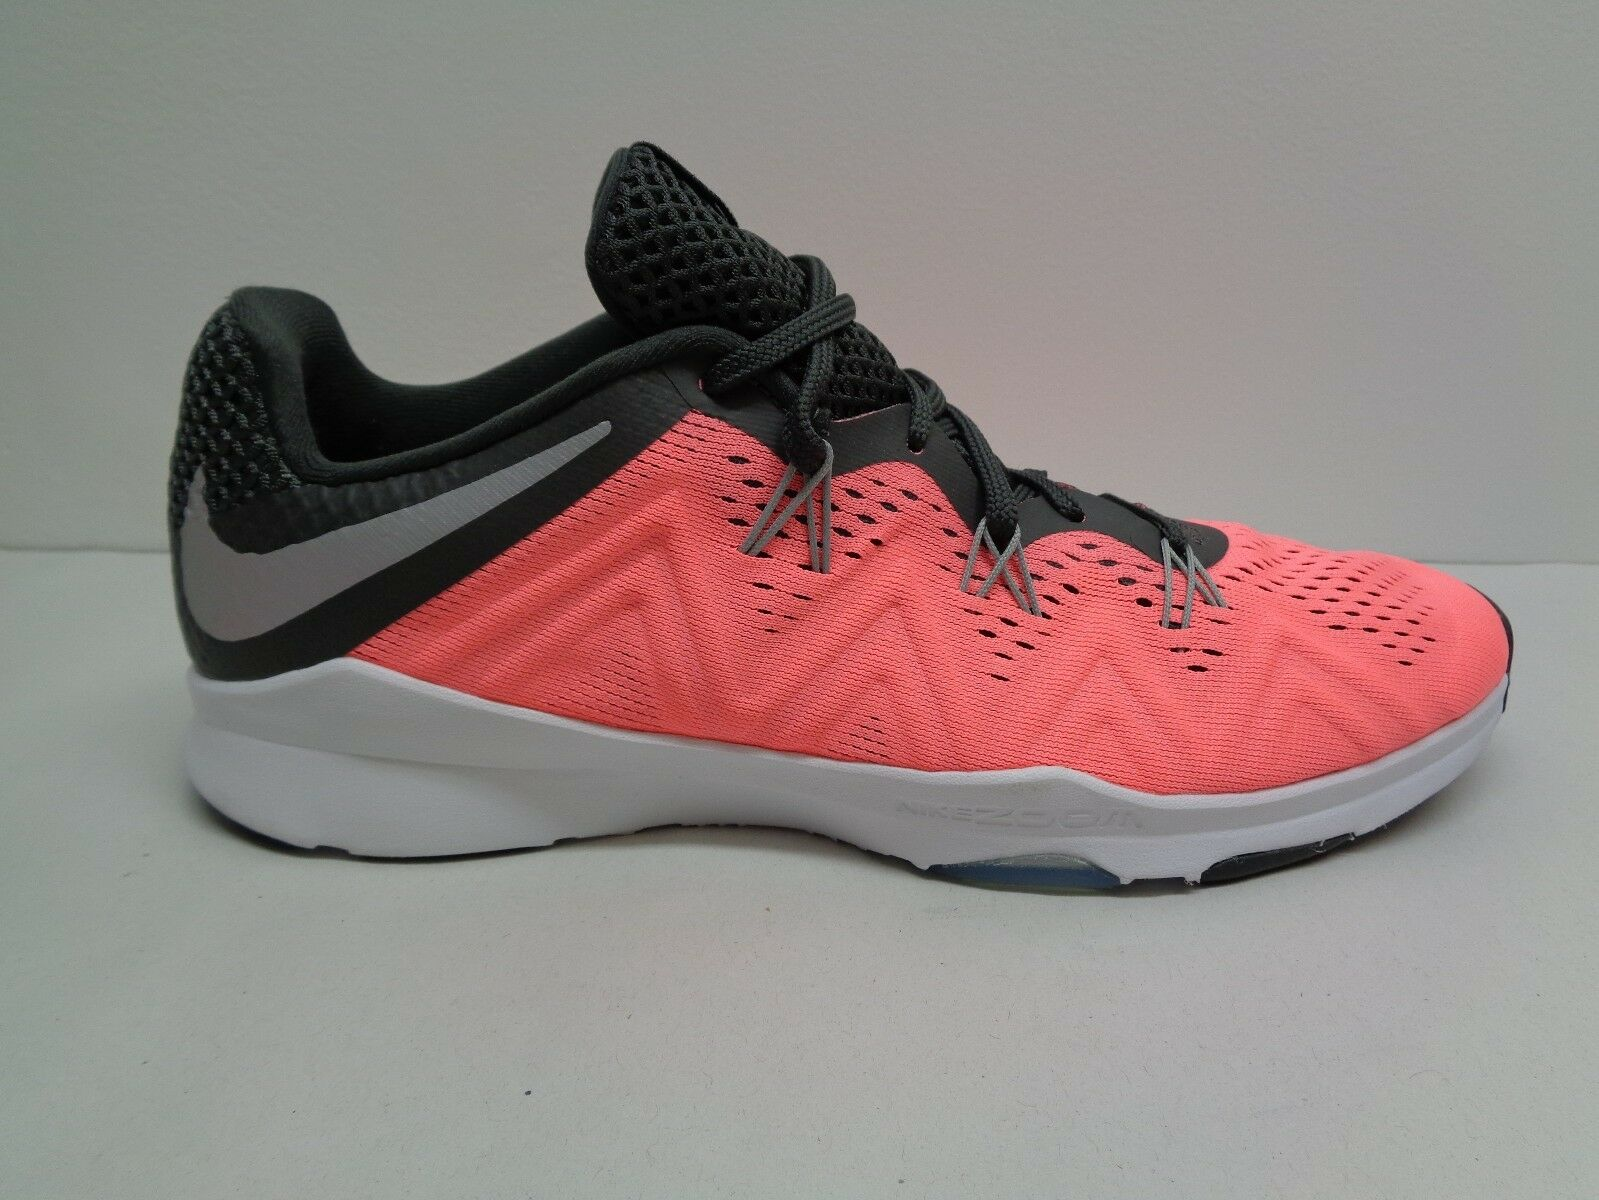 Nike Größe 10 ZOOM CONDITION TR TR TR Pink Lava Glow Training Sneakers New Damenschuhe Schuhes 24ca82